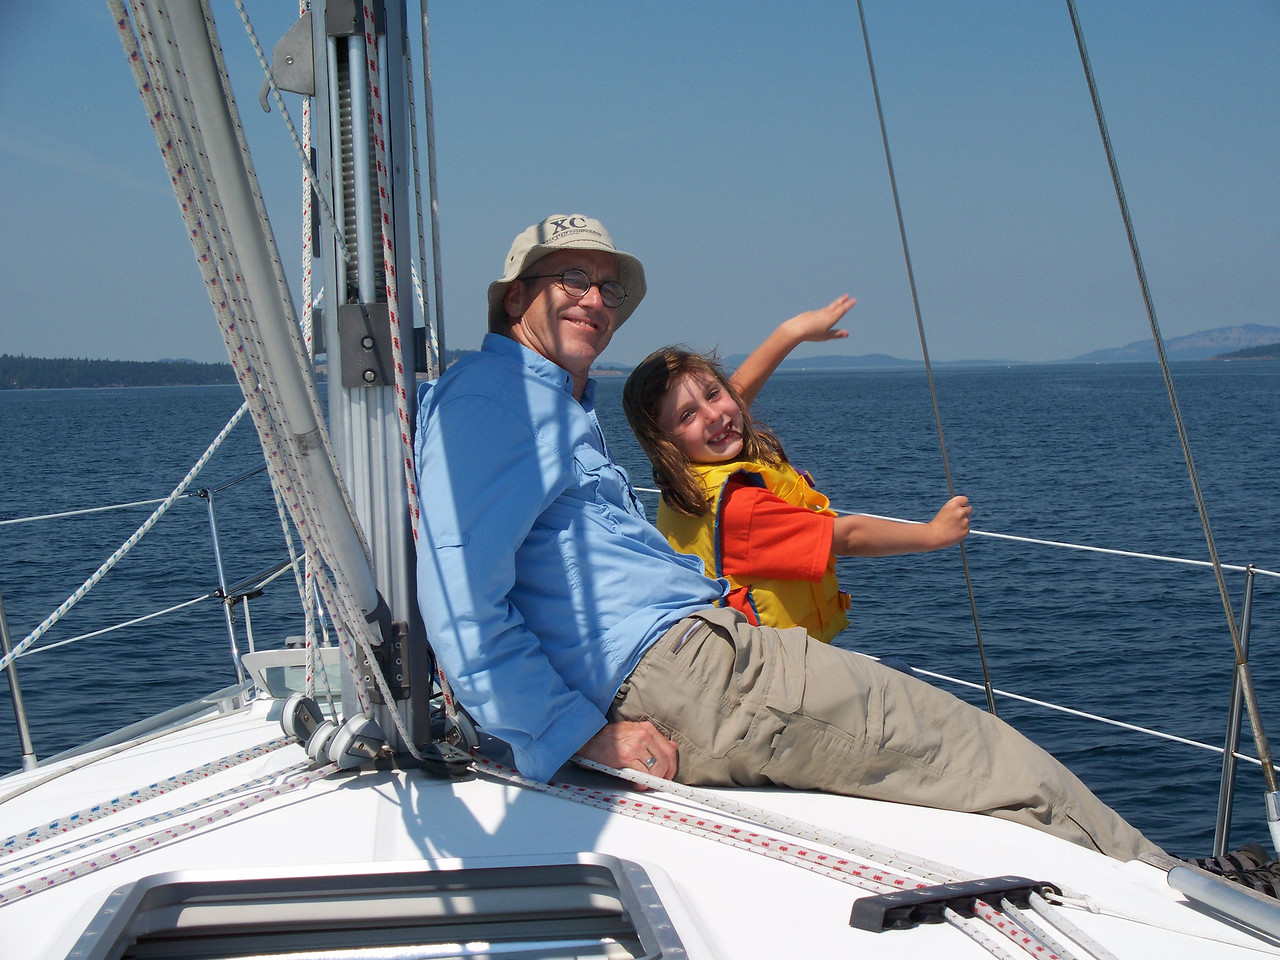 On Tuesday afternoon, we motored northward on San Juan Channel towards Roche Harbor.  Glenn and Abby.  (photo by Sonia)